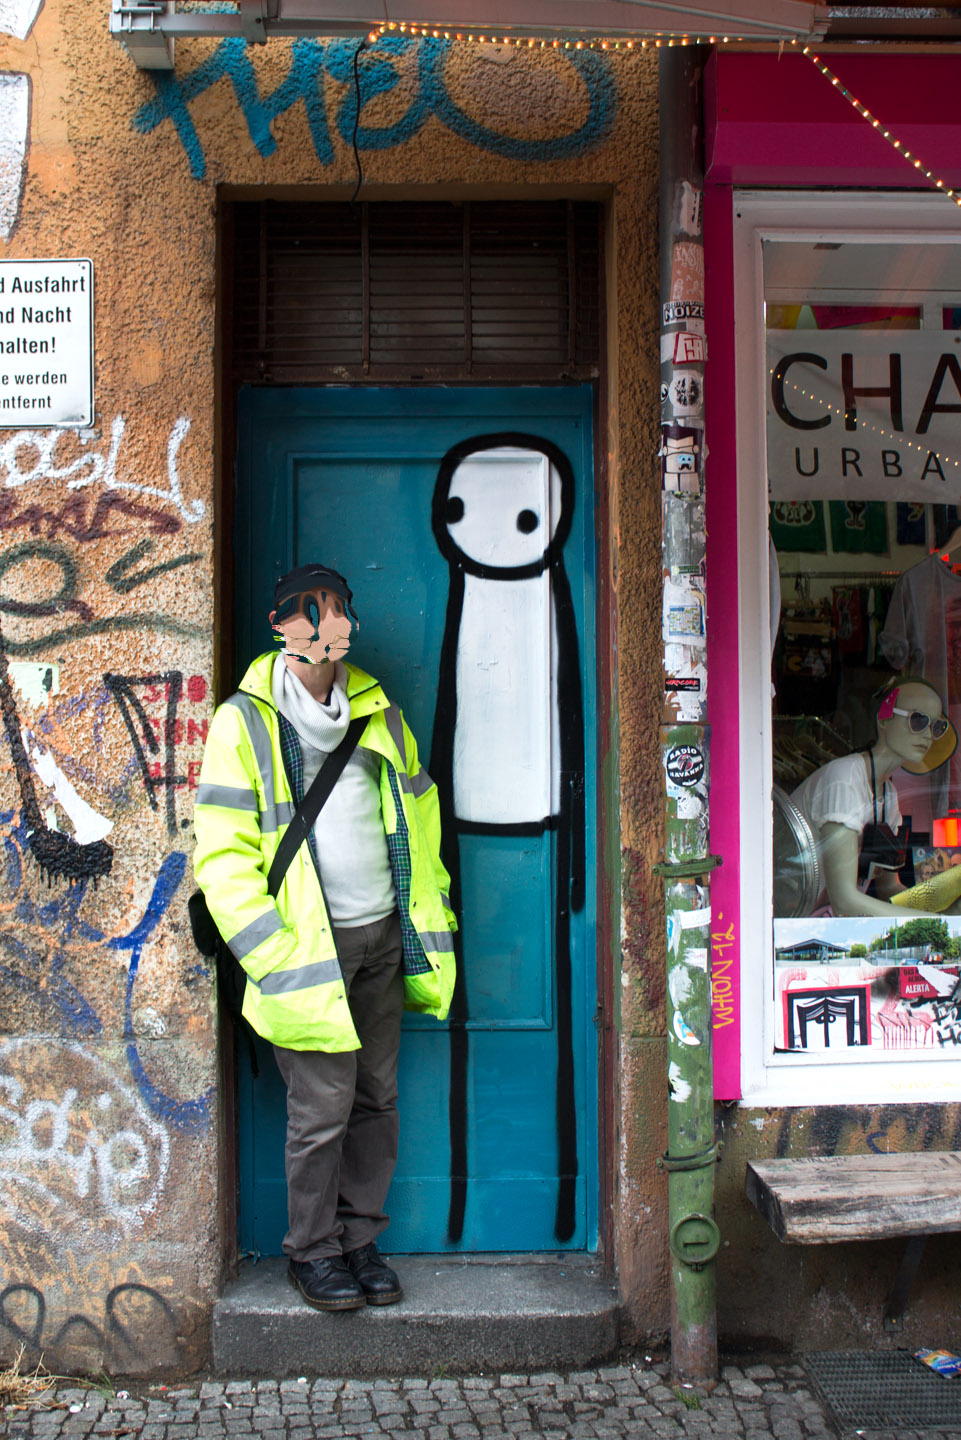 London Based Street Artist Stik Hits Berlin For The First